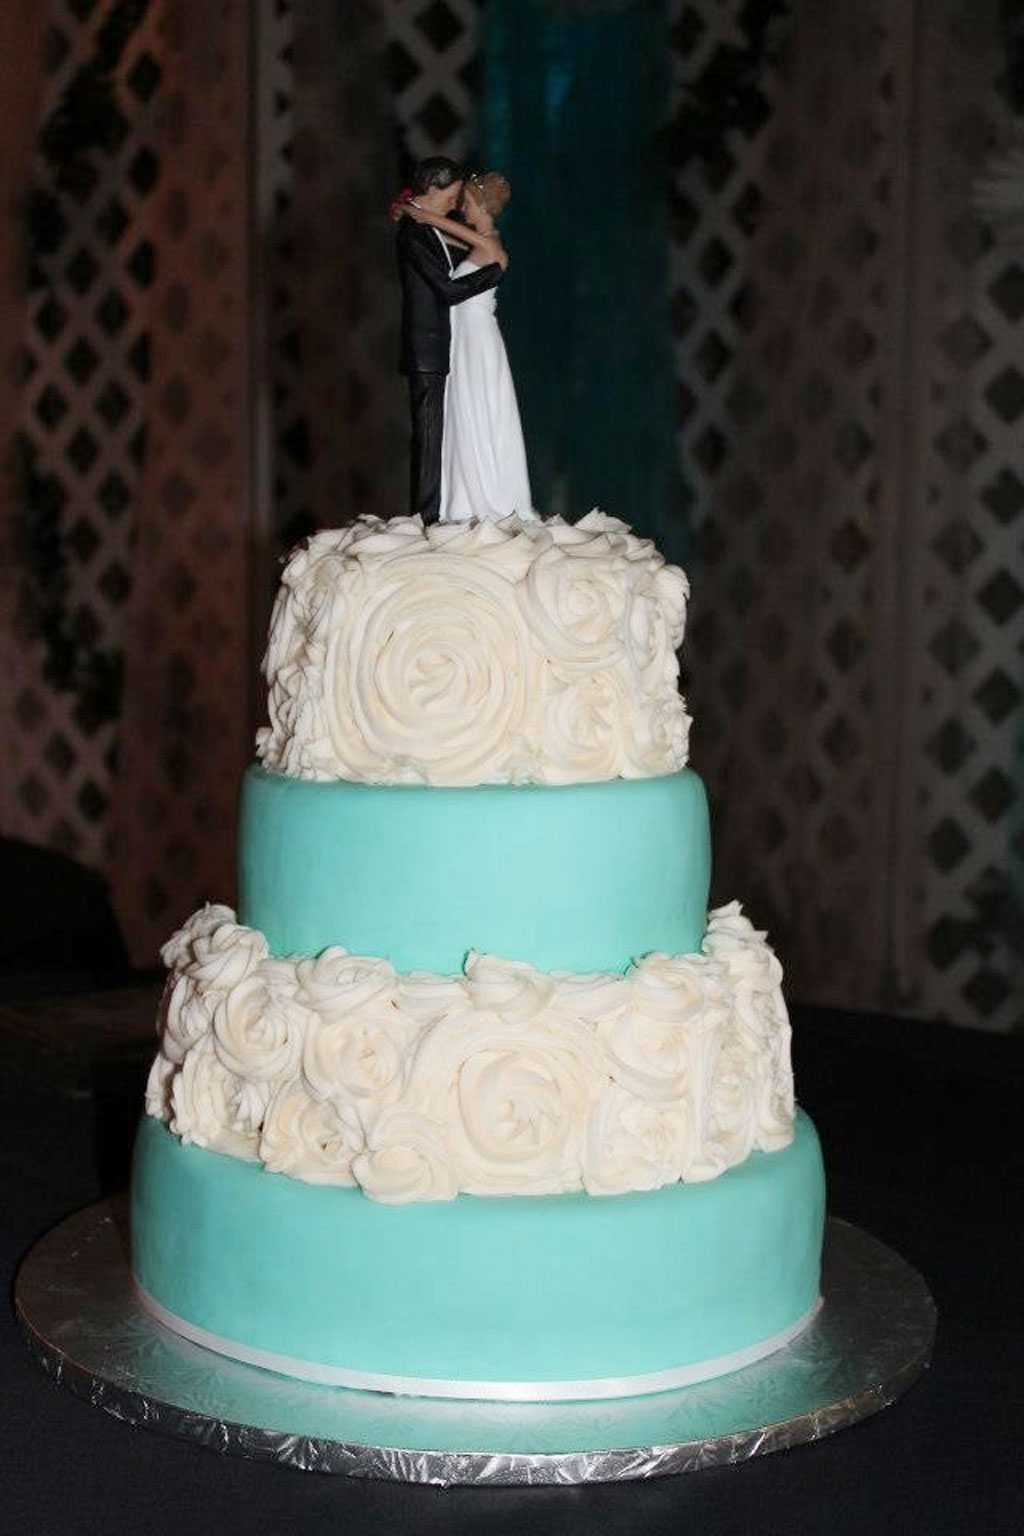 popular wedding cake fillings wedding cake with strawberry filling wedding cake cake 18687